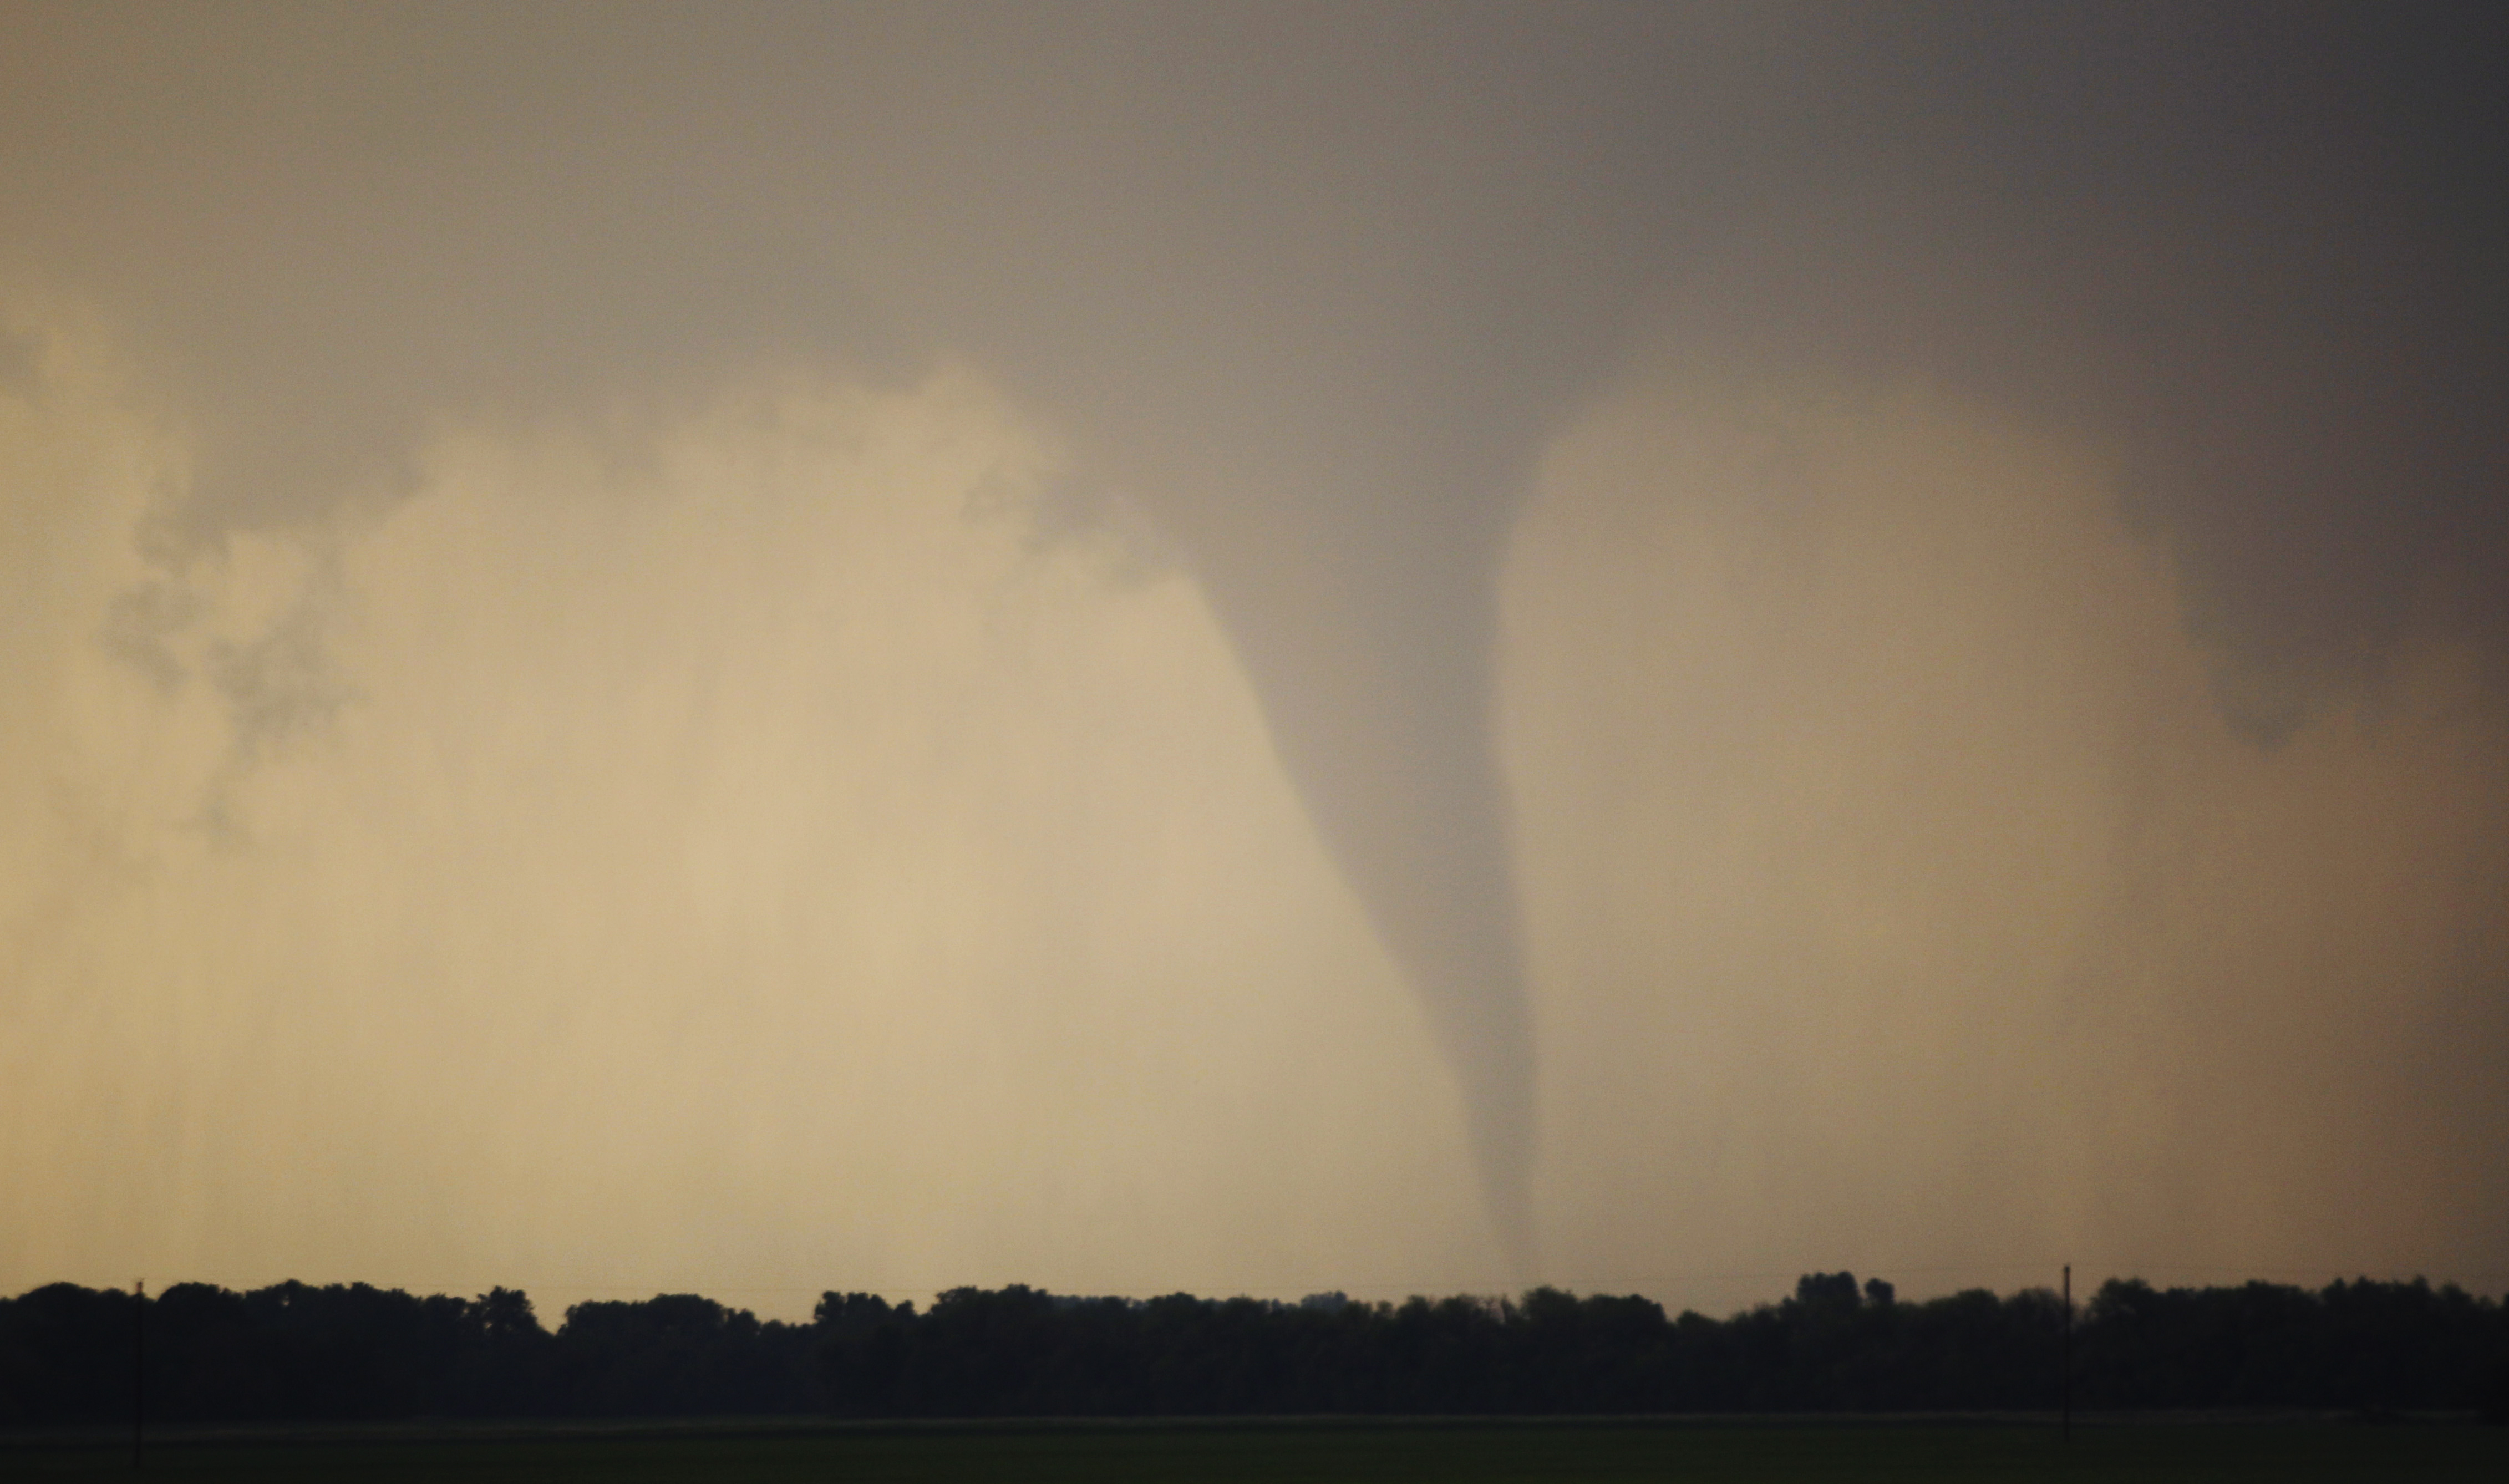 Douglas County tests warning sirens as part of Severe Weather ...